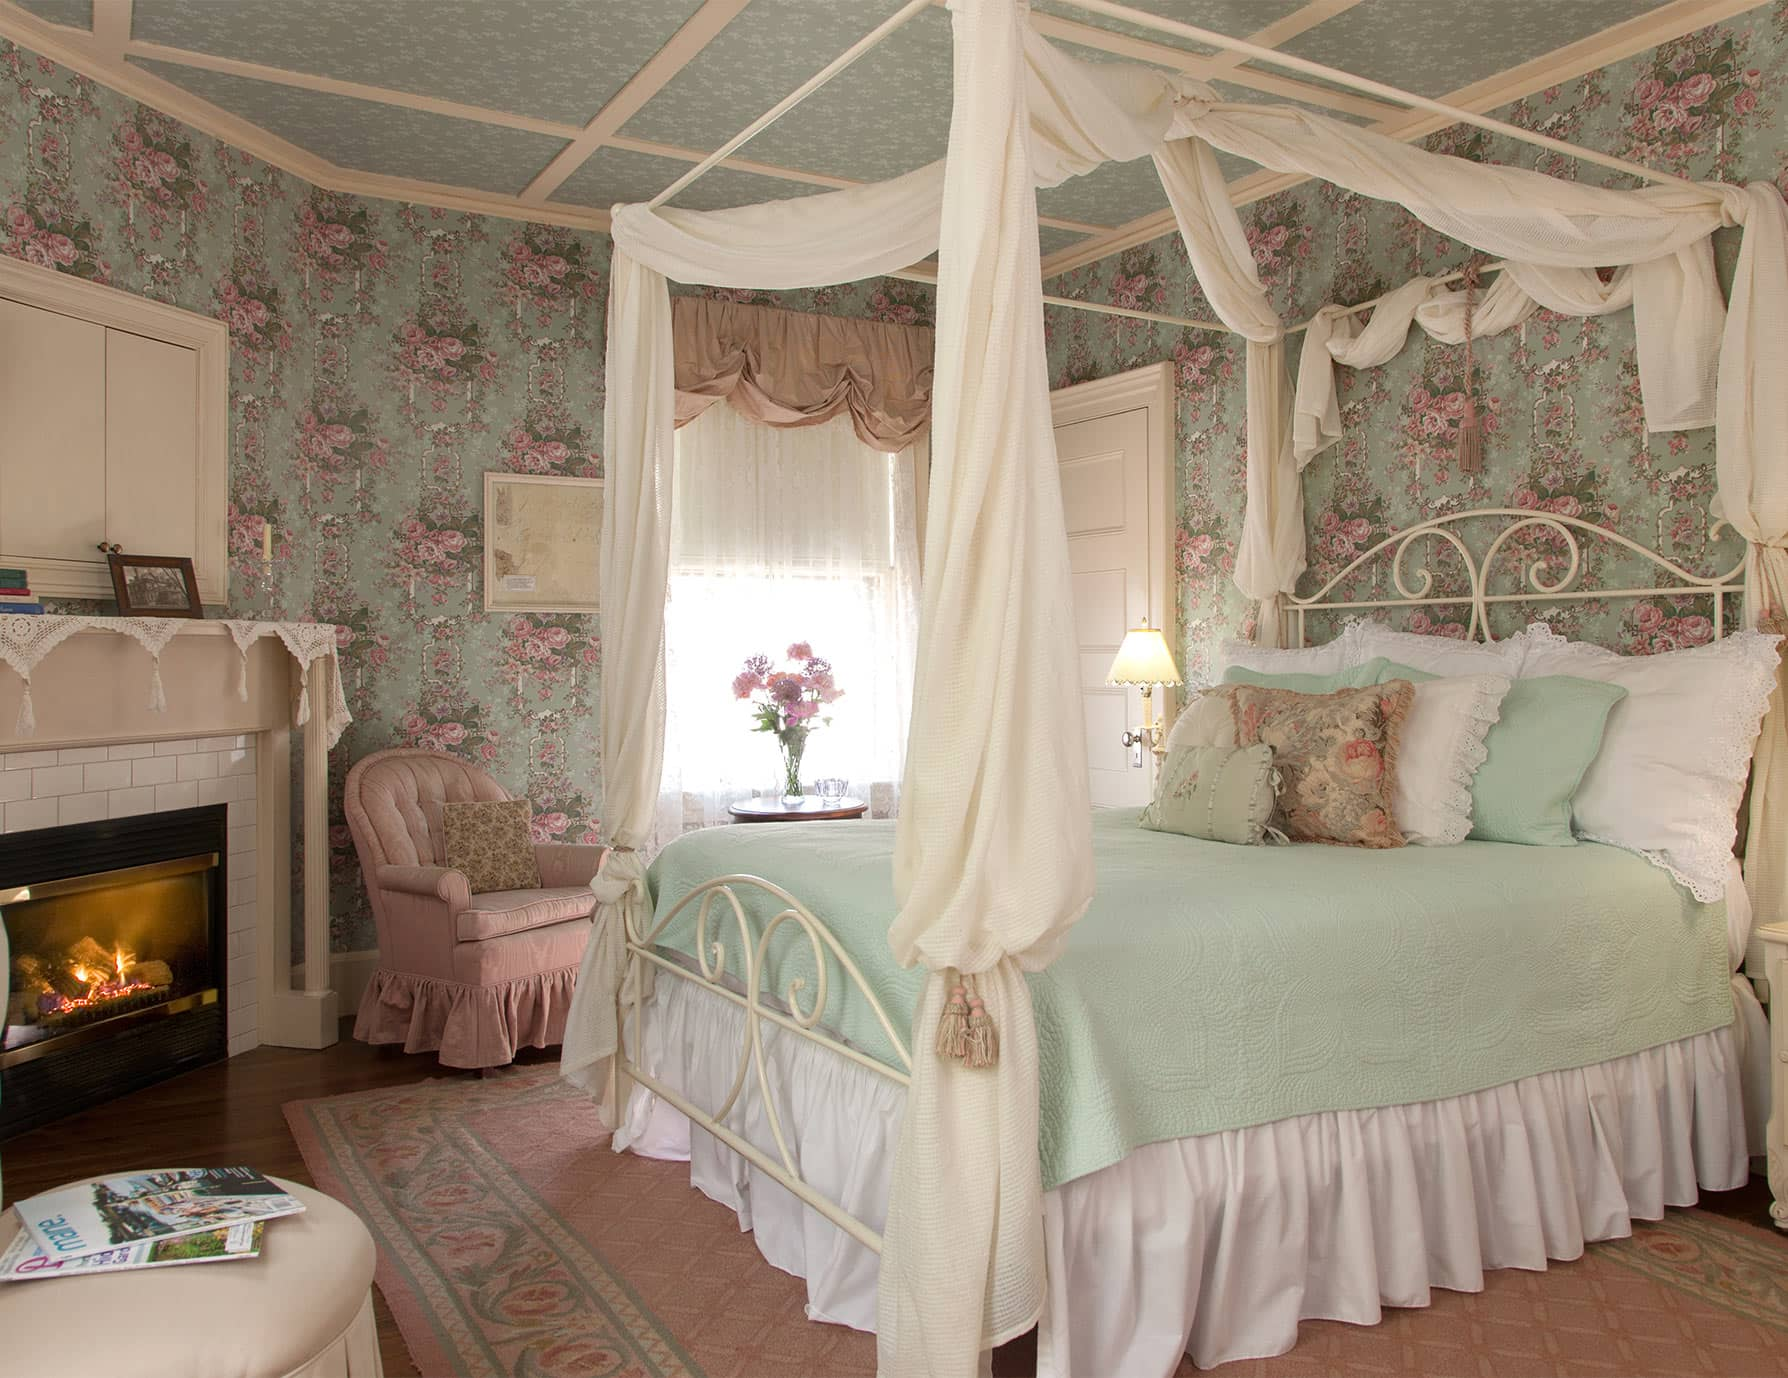 Comfortable pink bed with drapery across from fireplace in Room 4